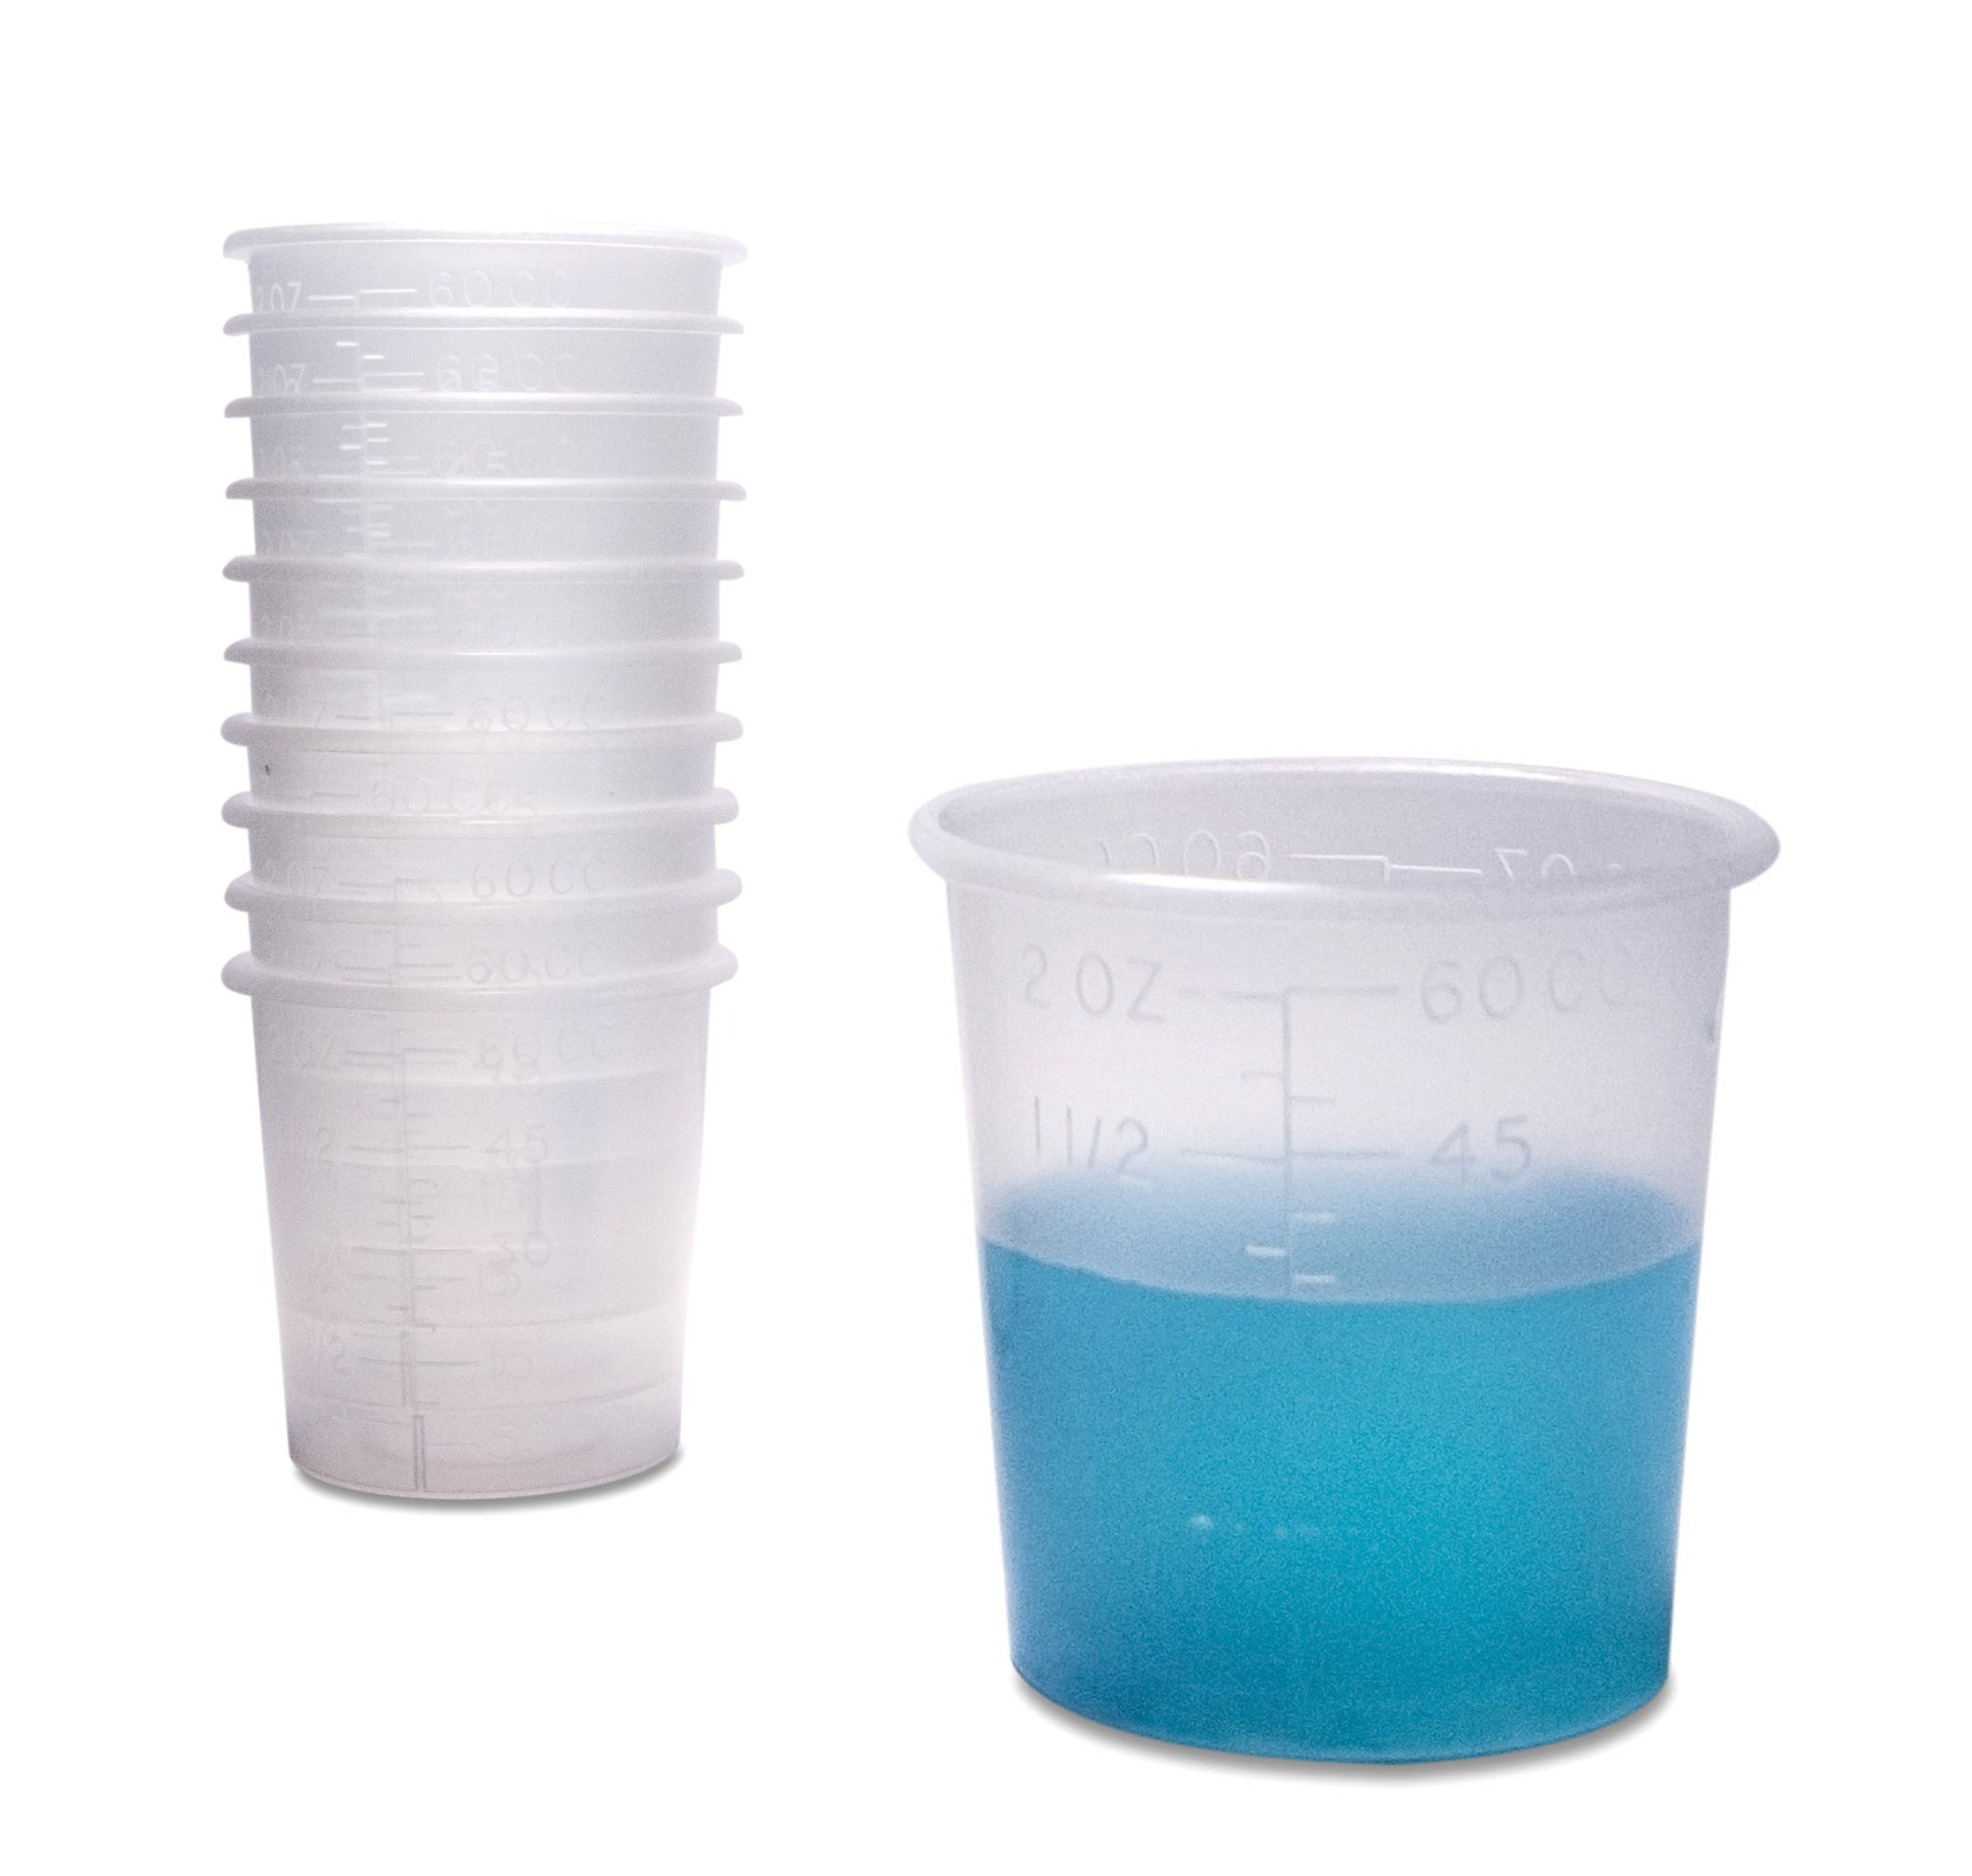 250 Thick Quality Two Ounce Measuring Cups with Rounded Brims for Medicine Dispensing or Mixing or Portioning